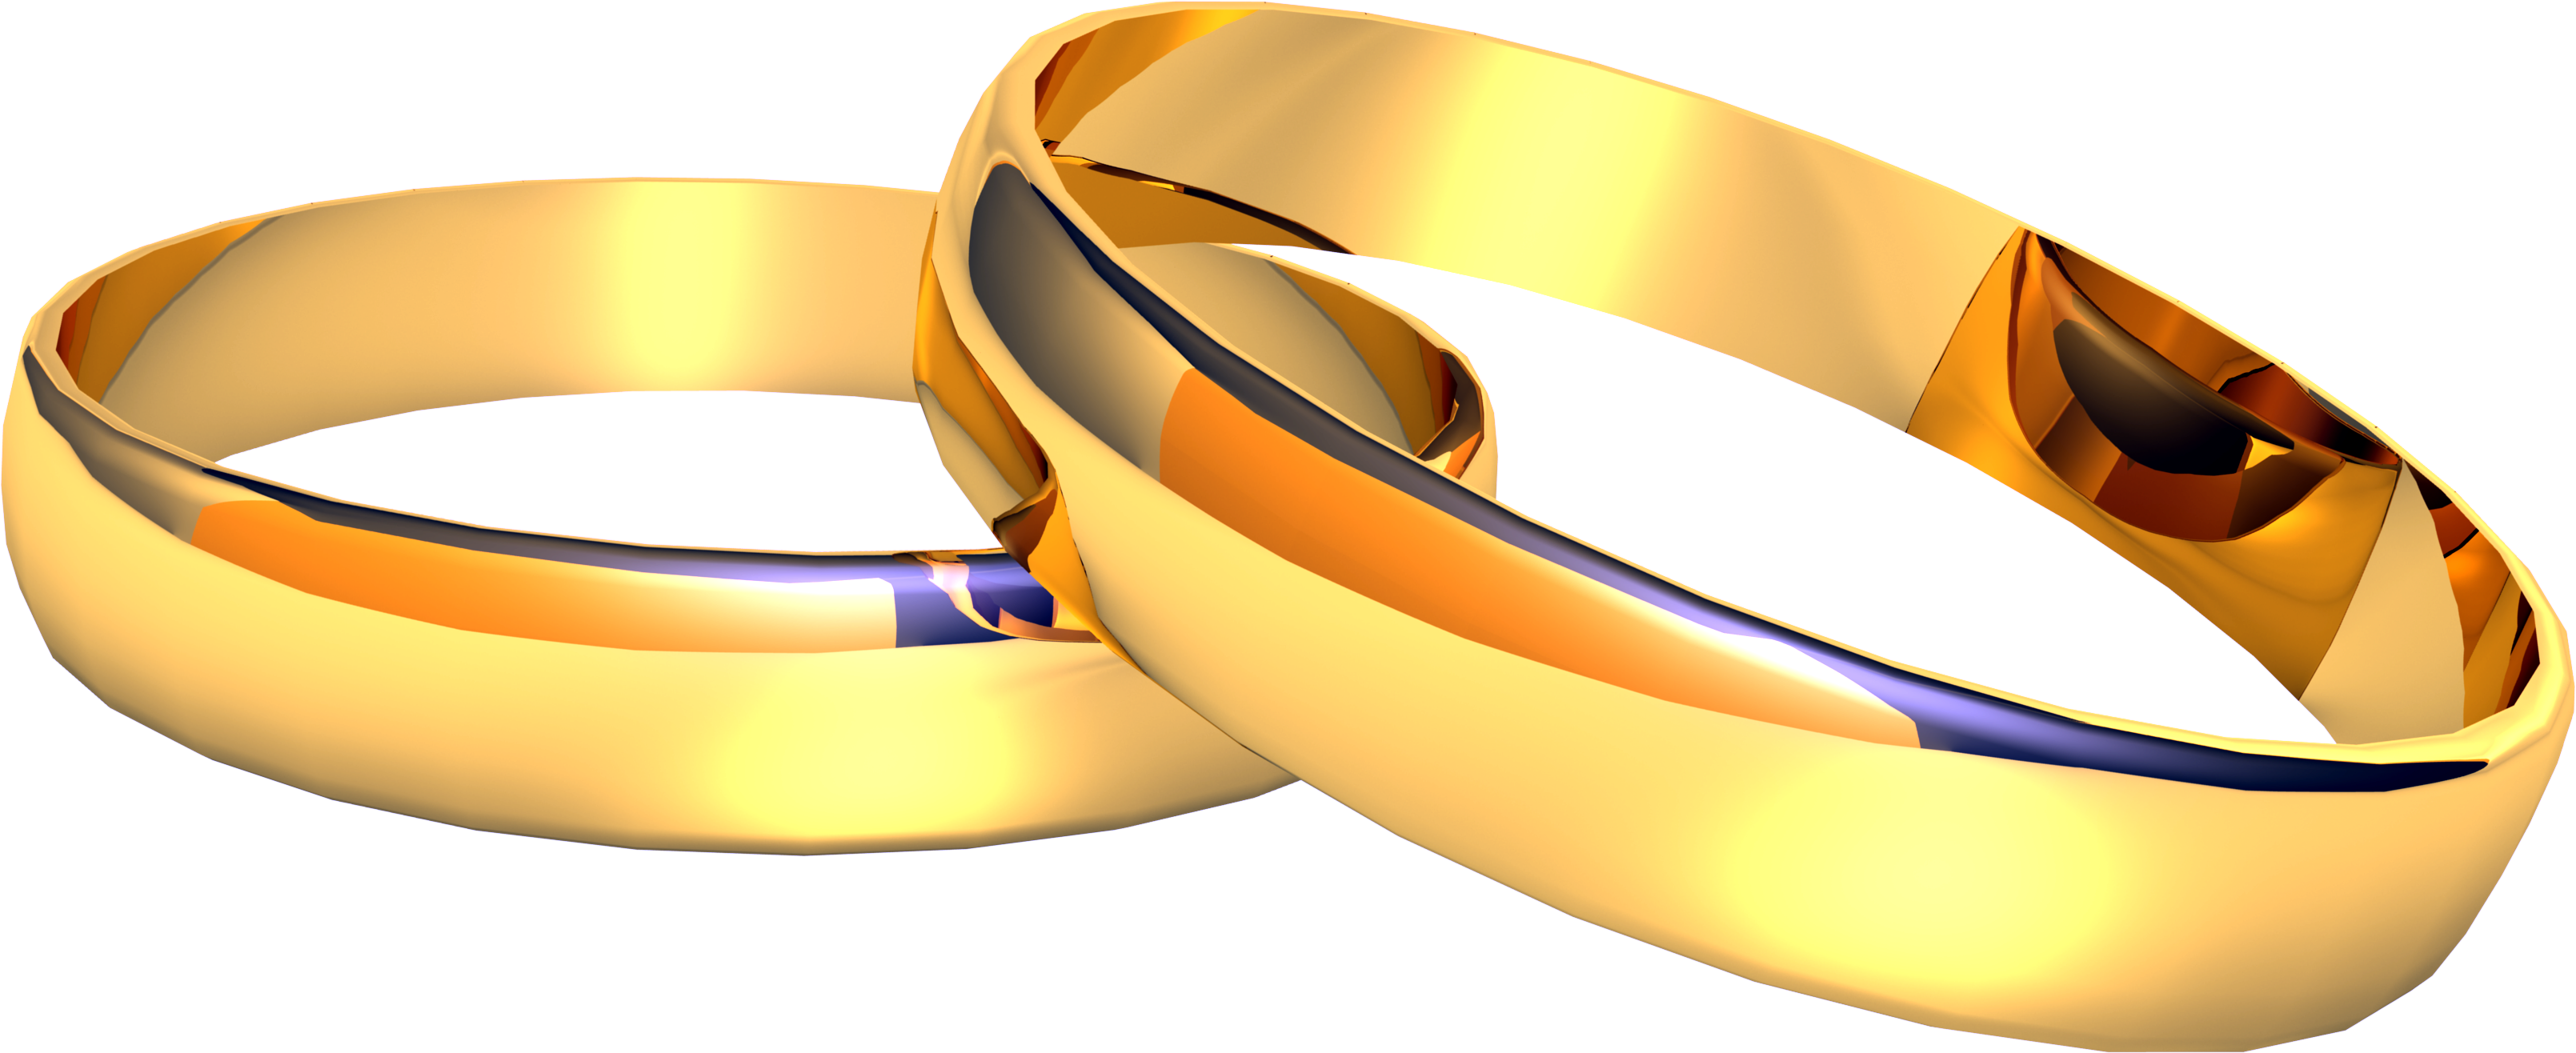 File rings wikimedia commons. Png files